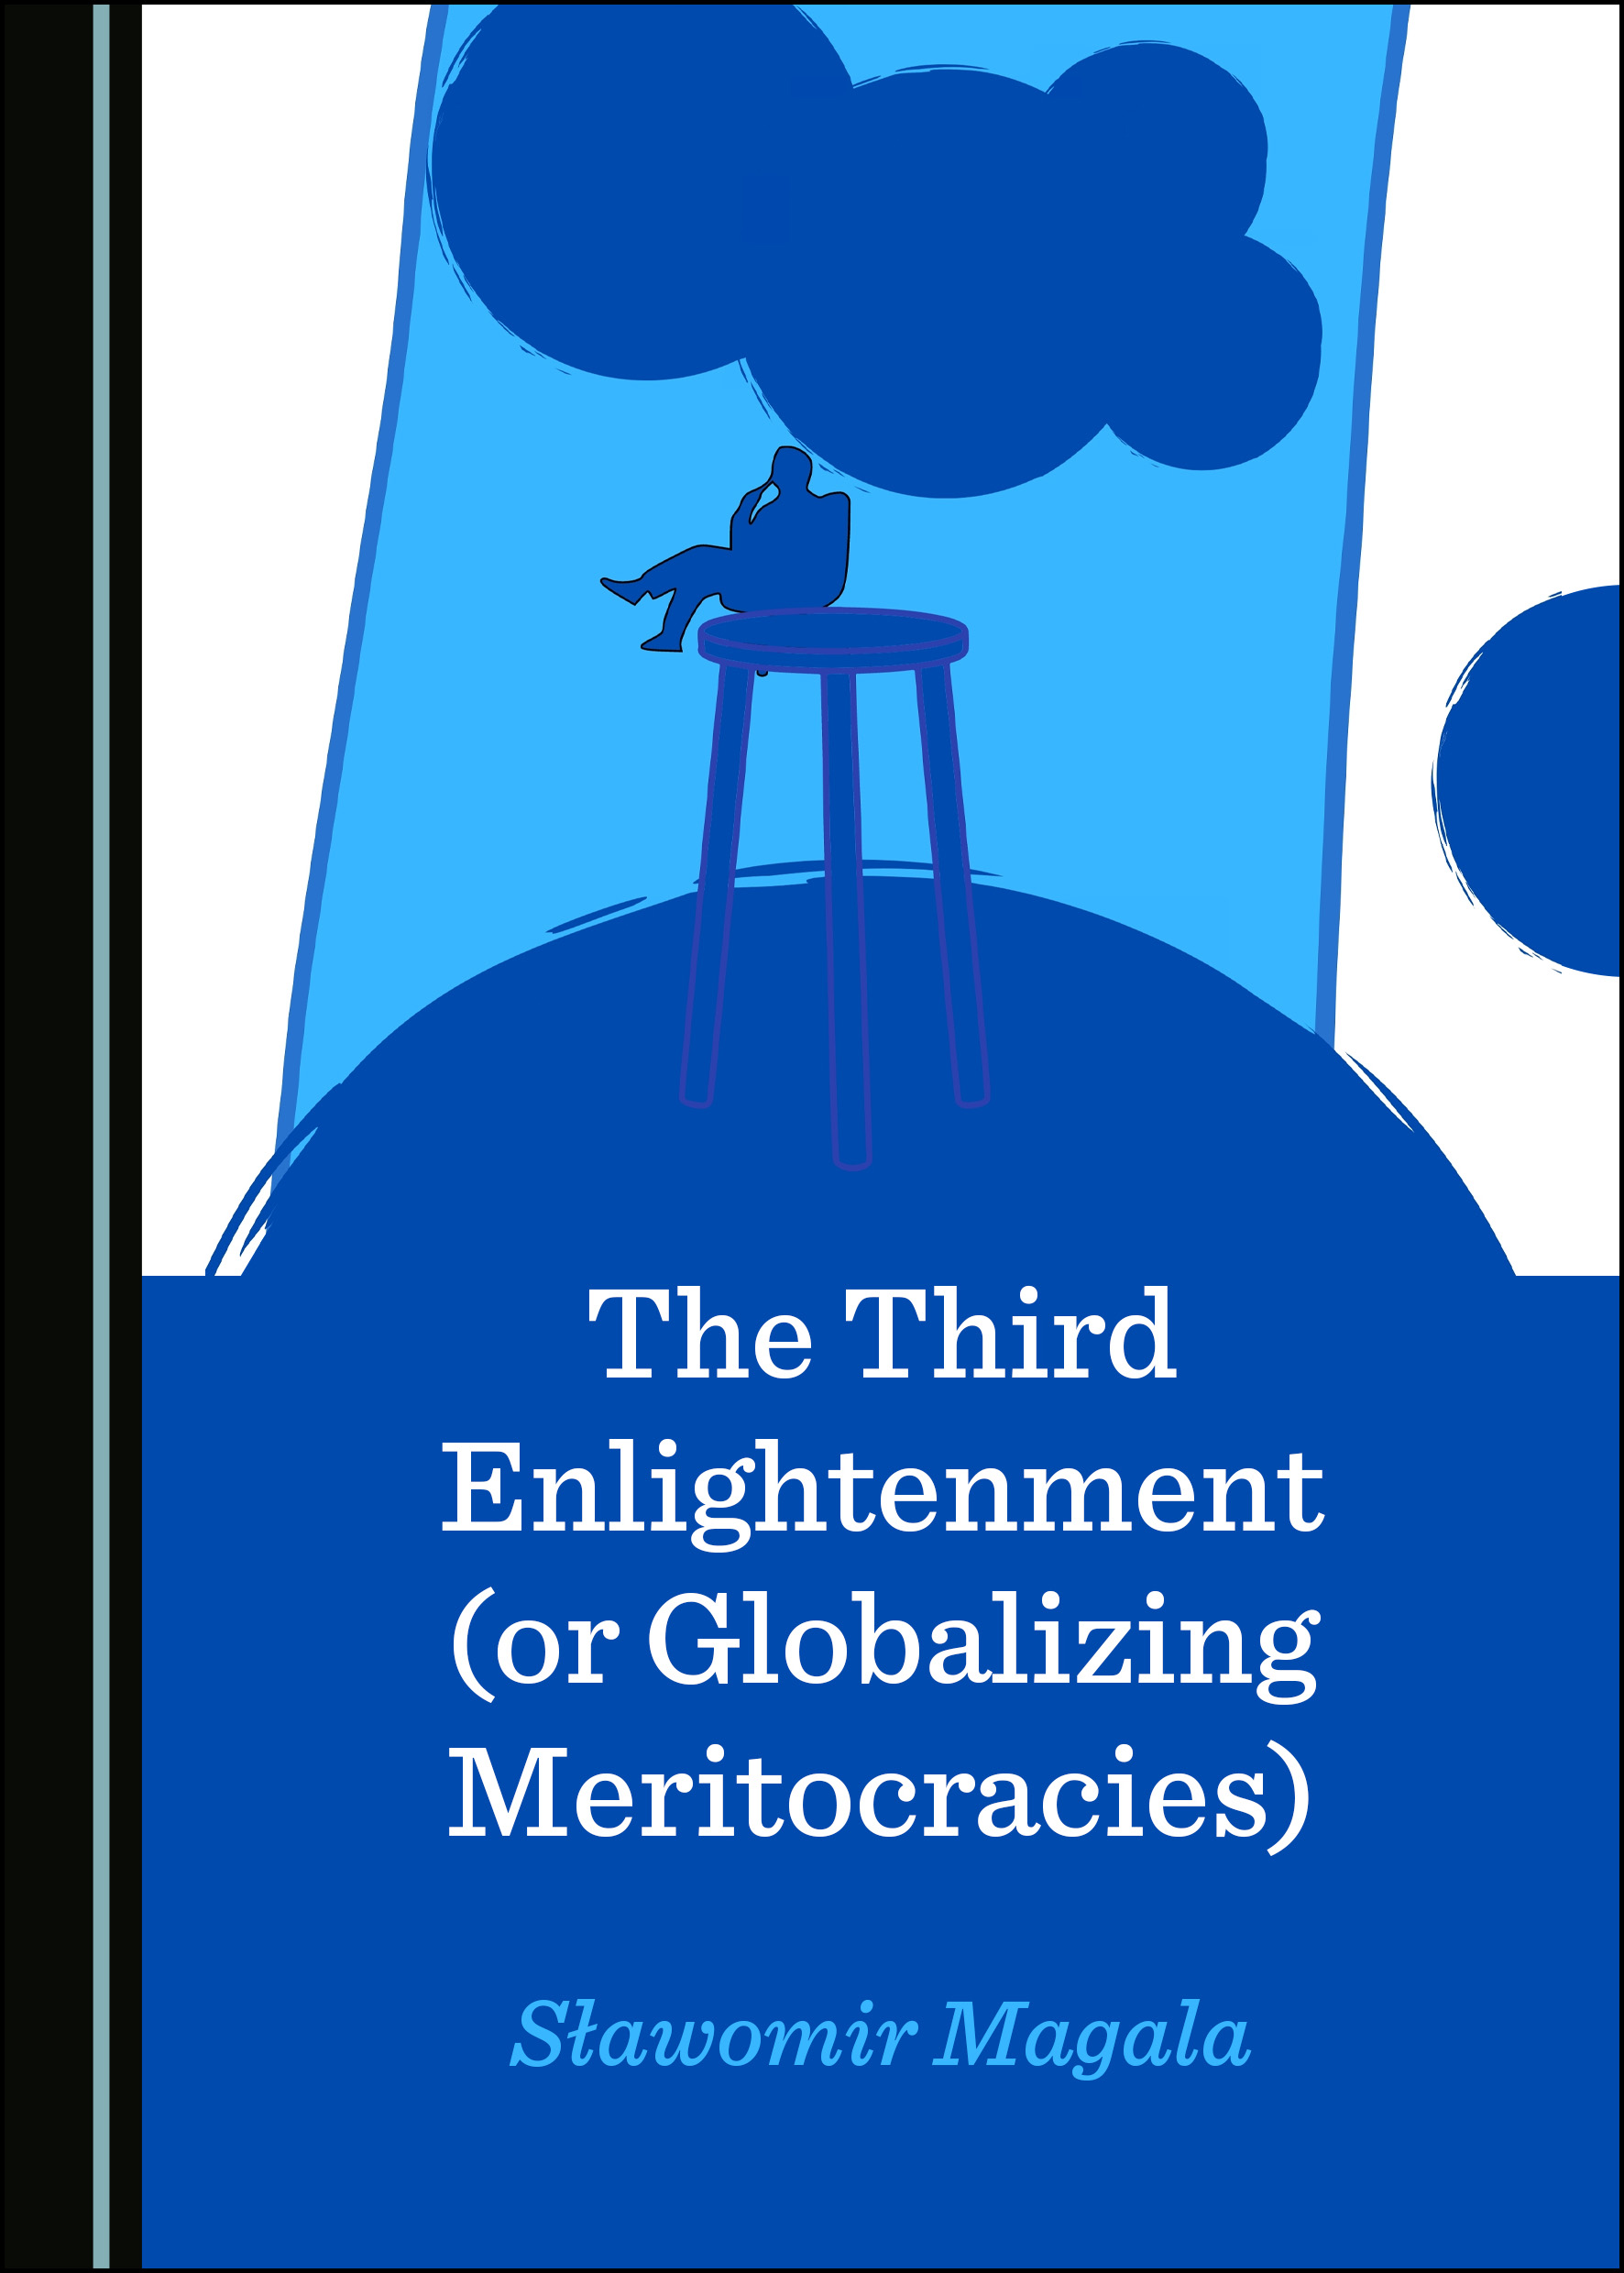 The Third Enlightenment (or Globalizing Meritocracies)